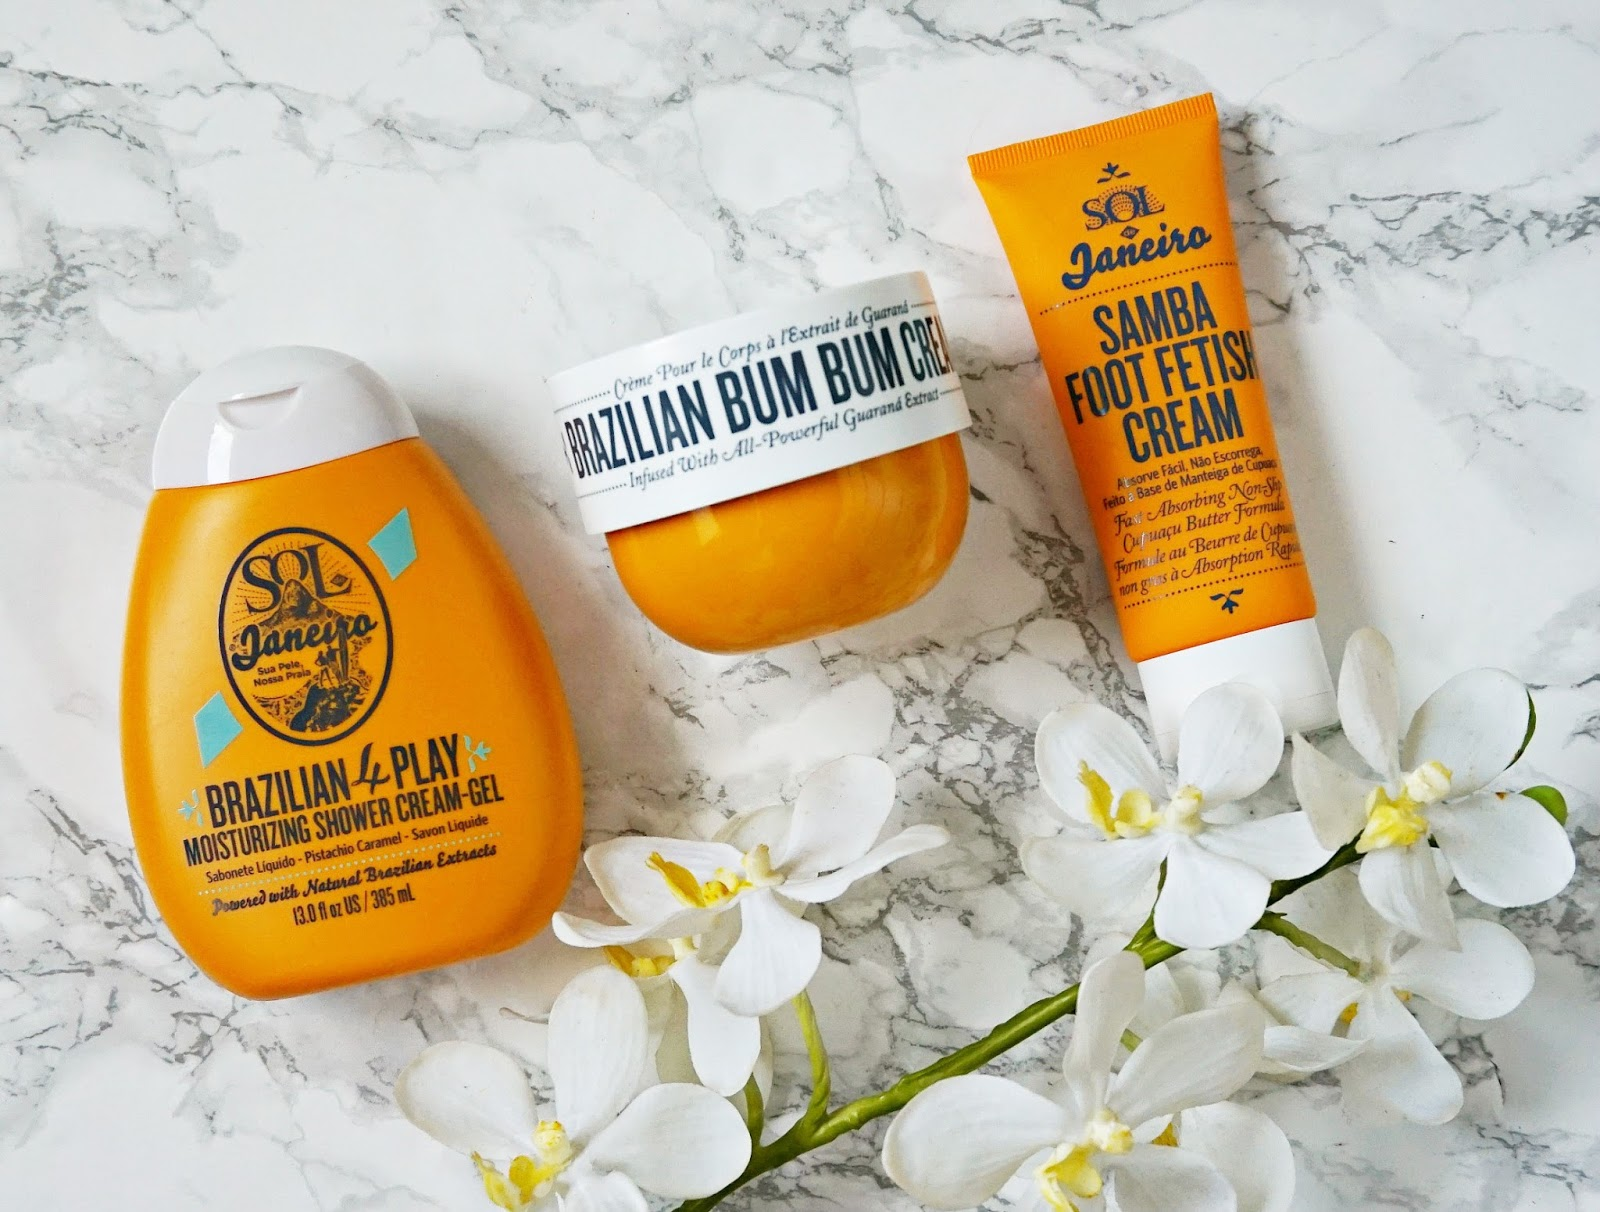 Sol De Janeiro, Bum Bum Cream, Samba Foot Fetish Care, 4 Play Moisturizing Shower Cream-Gel, review,